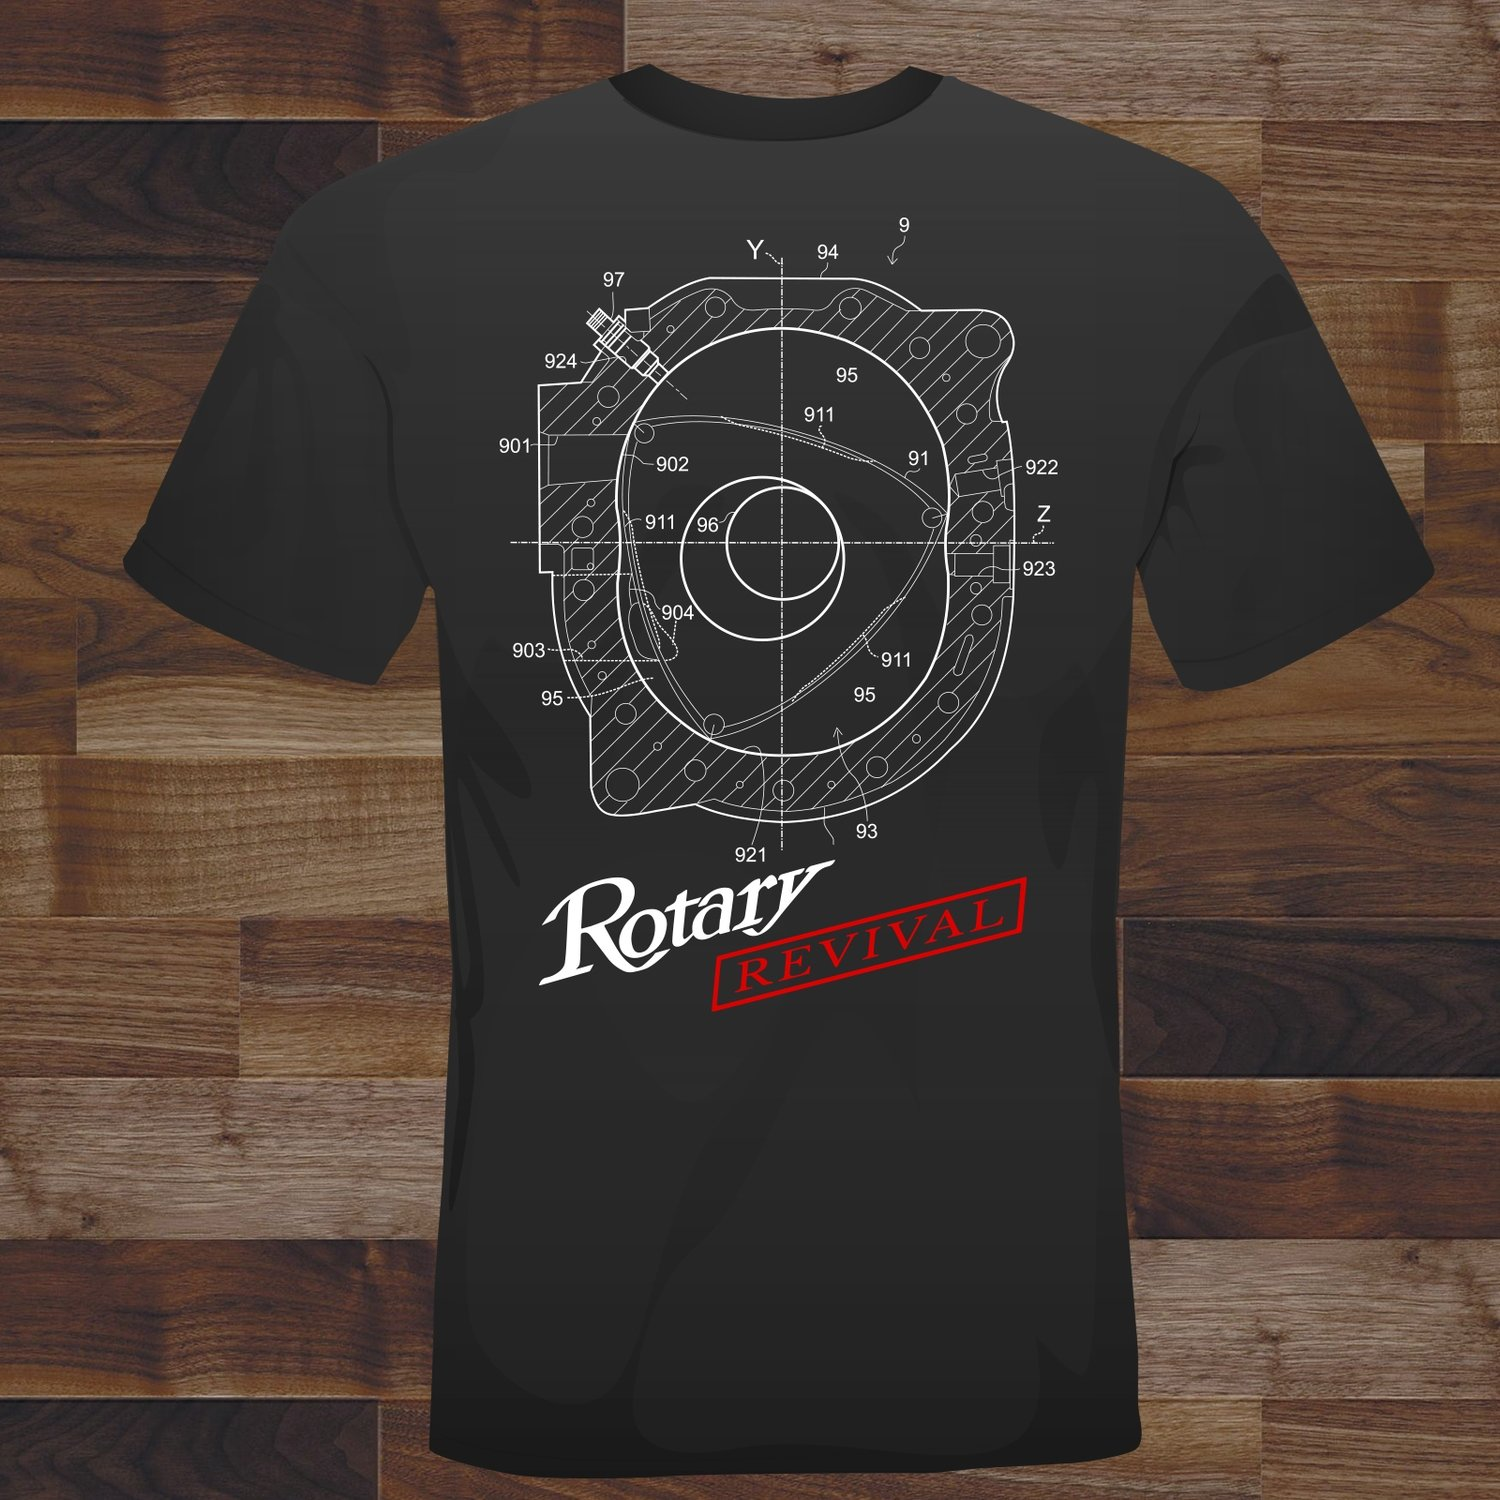 2018 Rotary Revival Blueprint T-Shirt